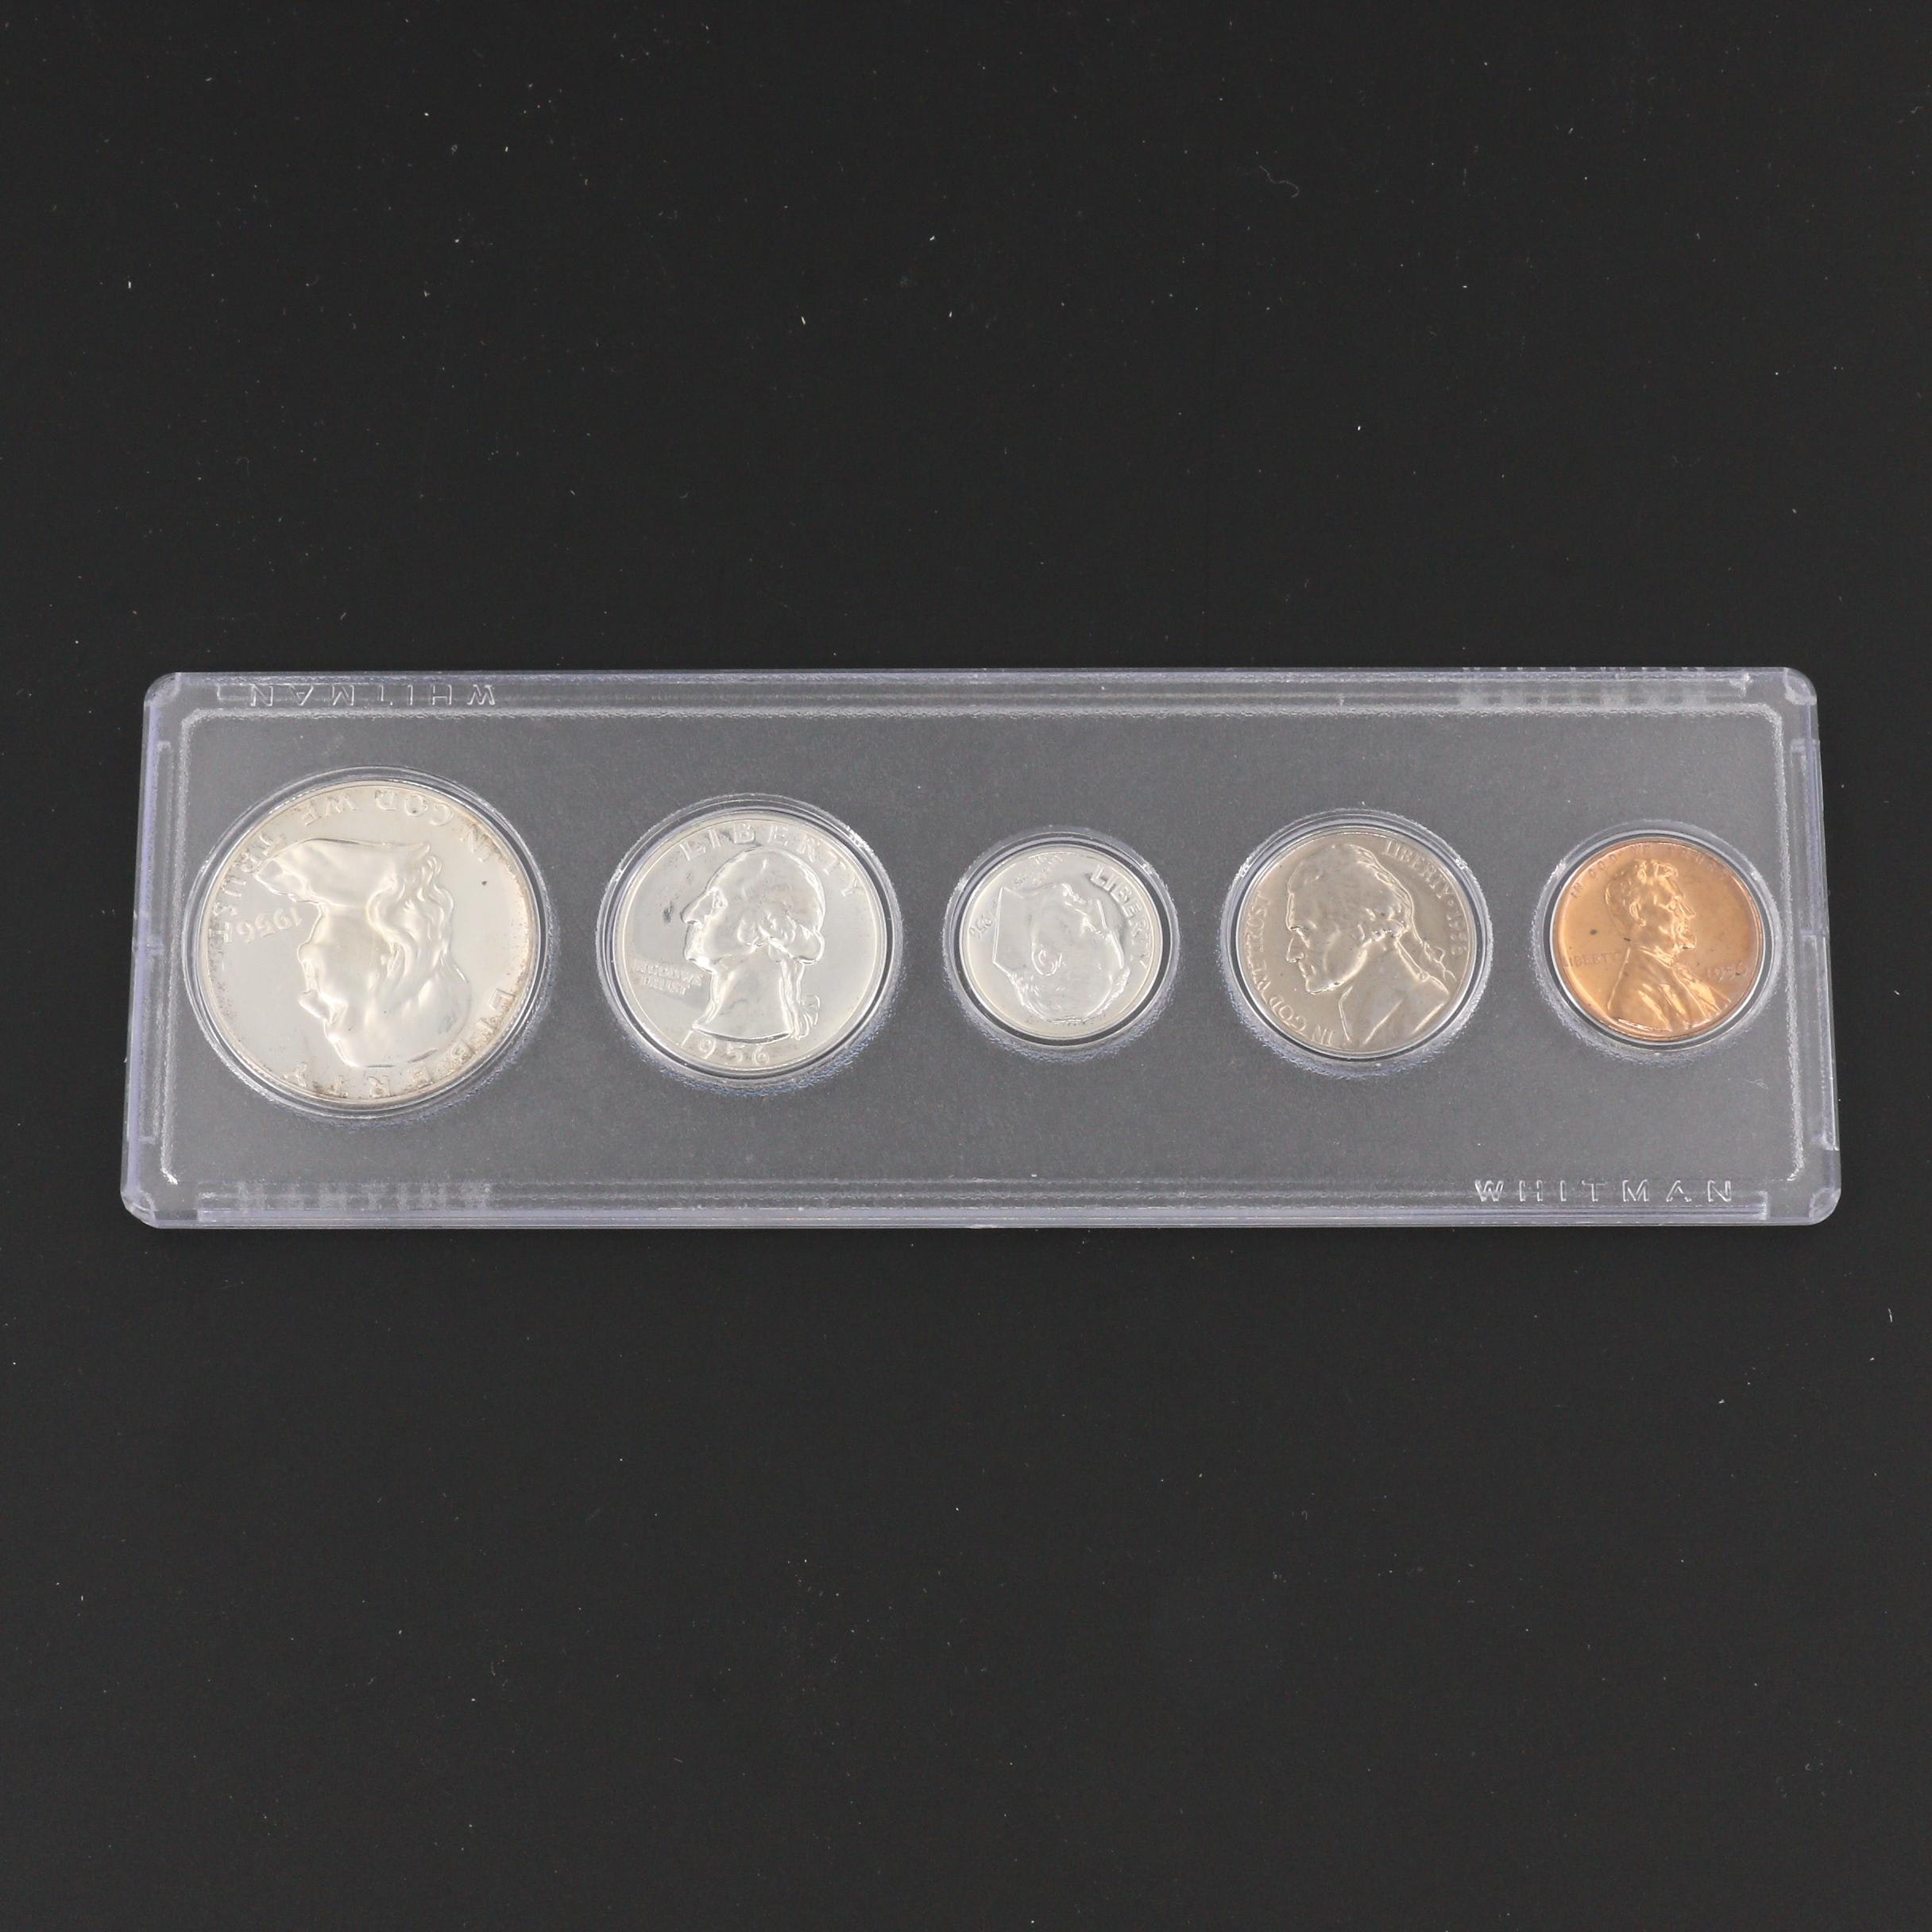 A 1956 U.S. Type Coin Proof Set